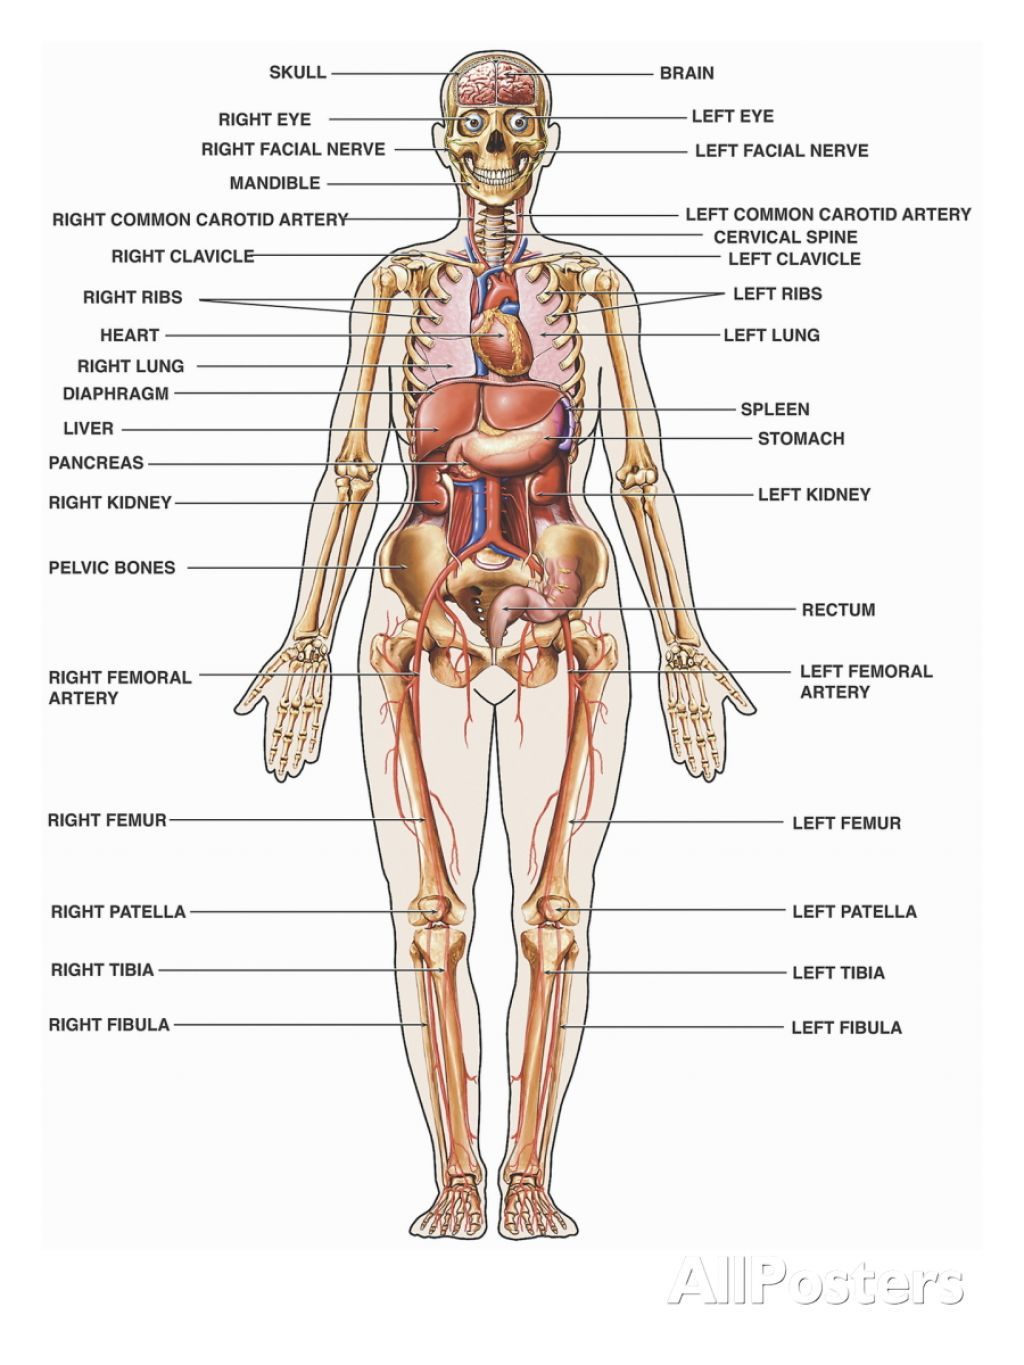 Anatomy Of The Human Body System The Spine Pinterest Human